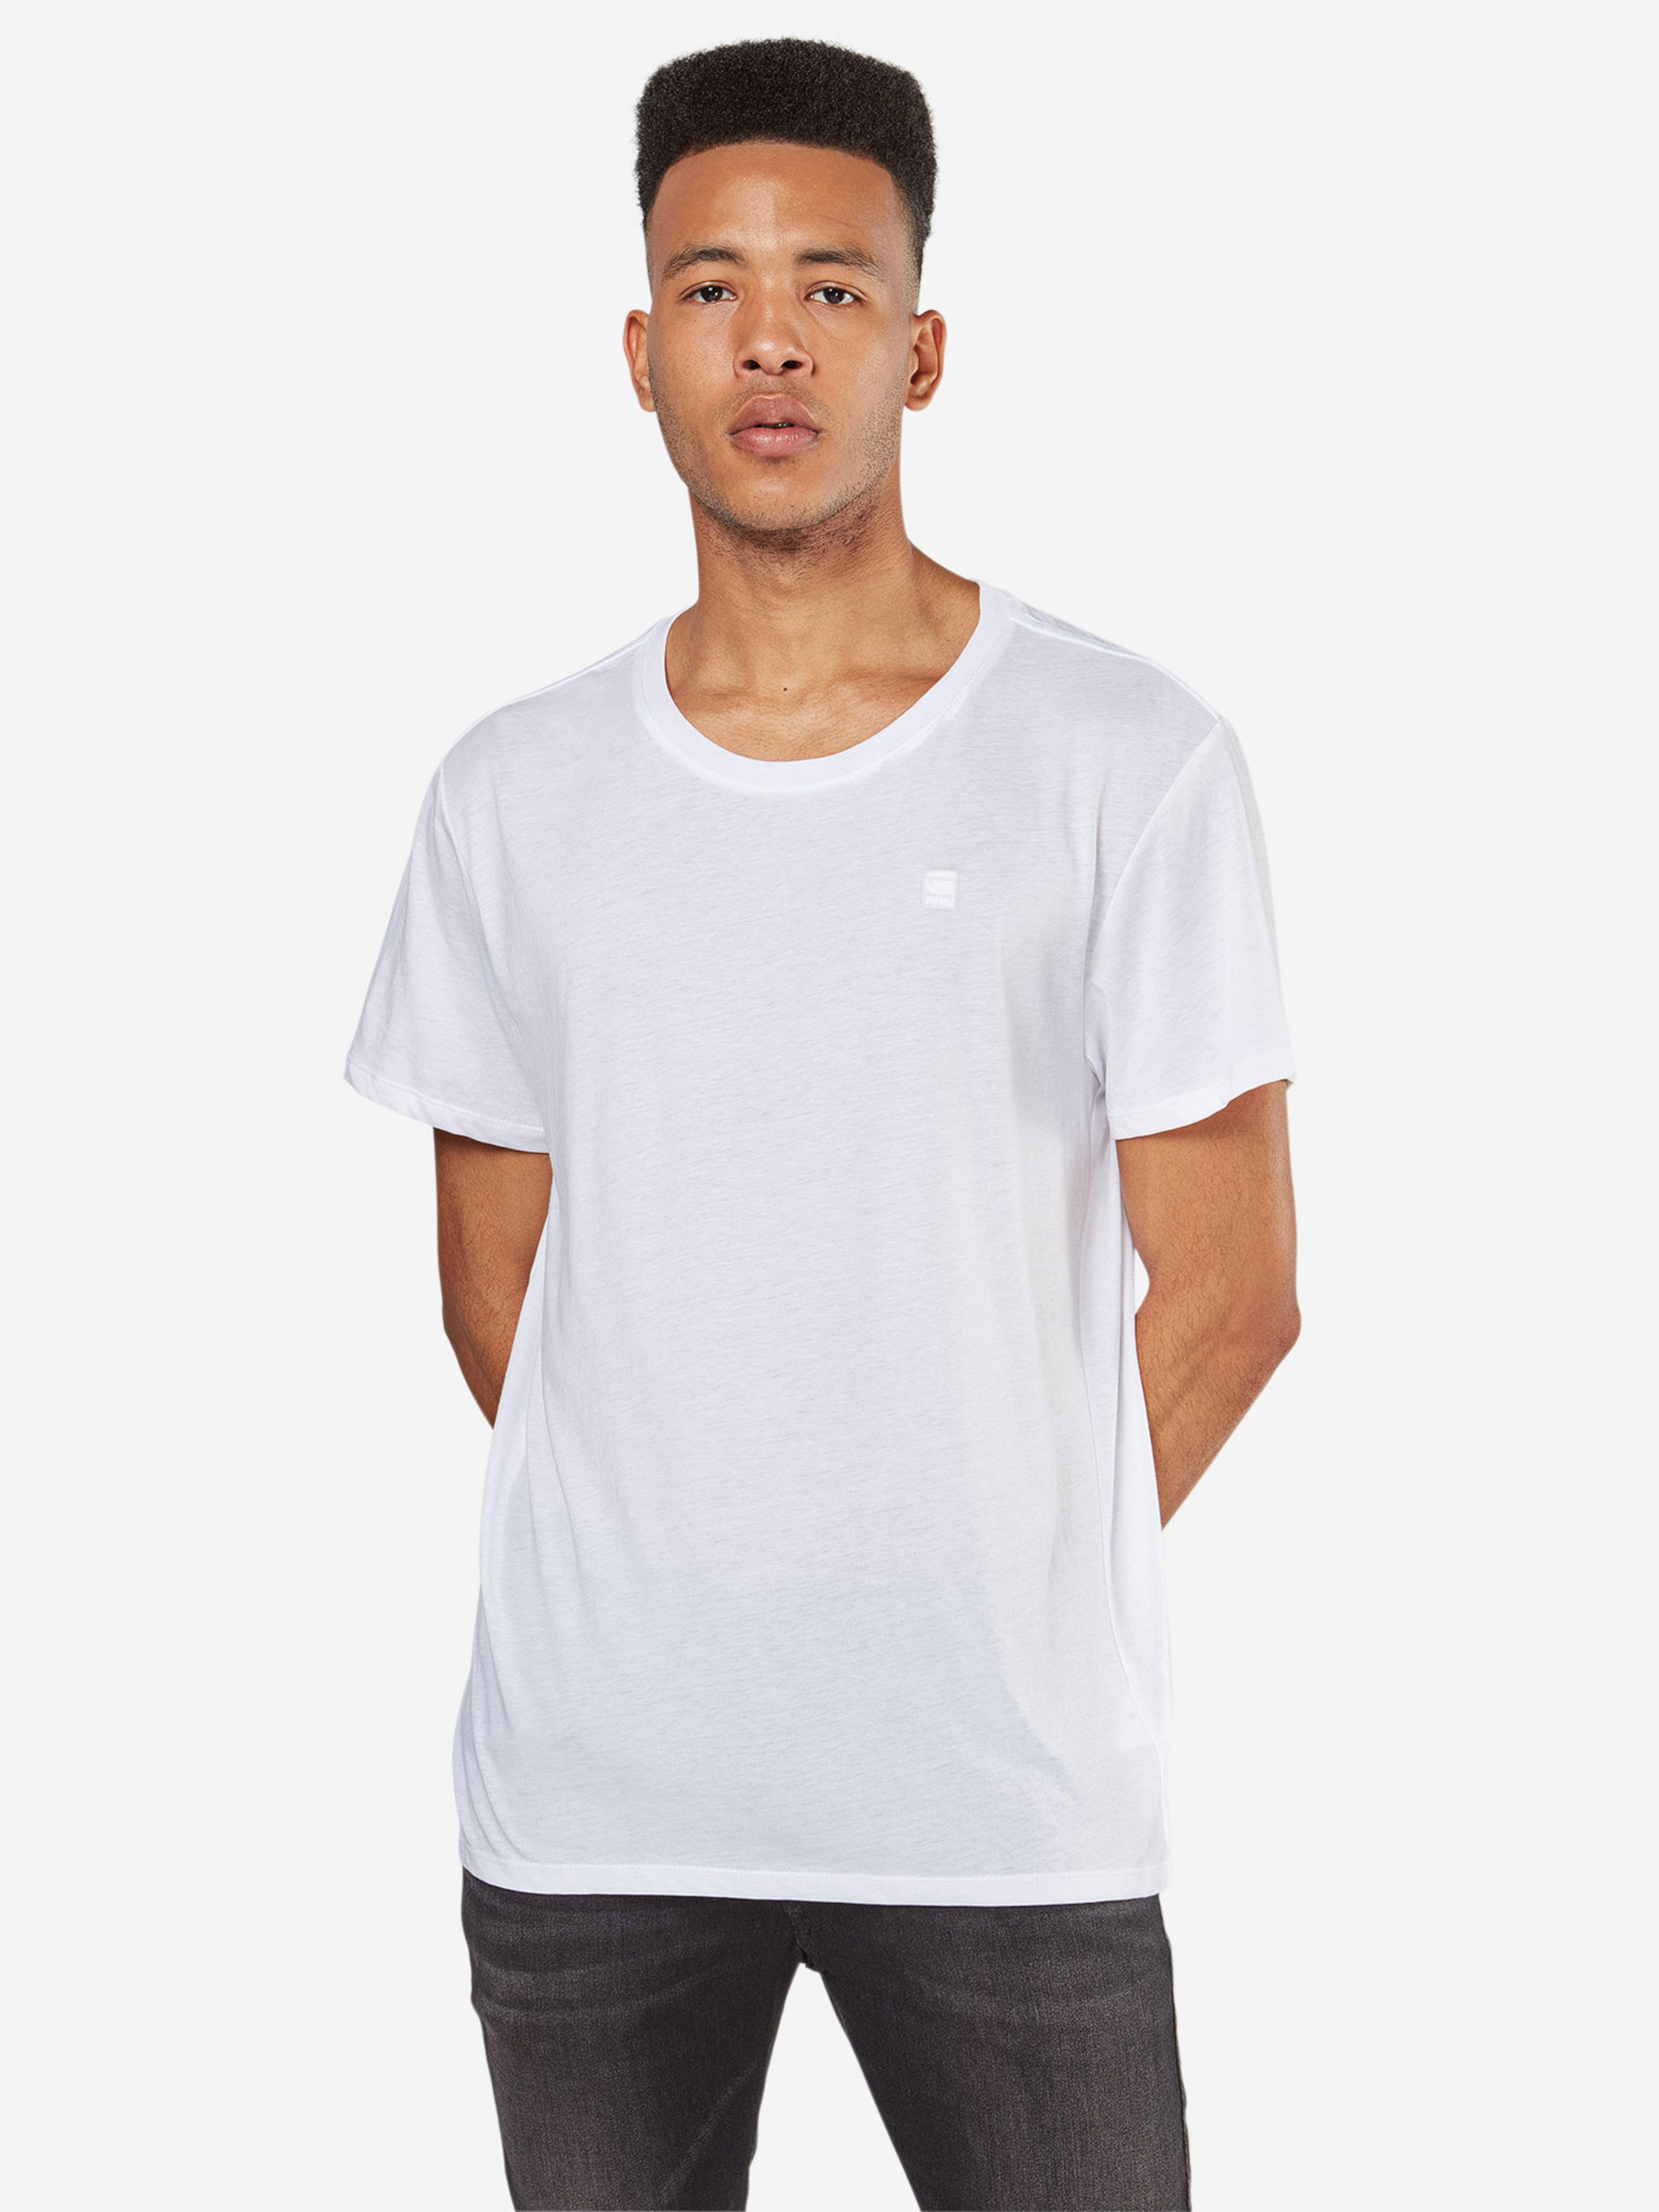 T star Blanc G Raw En 'base shirt Htr' F1TKclJ3